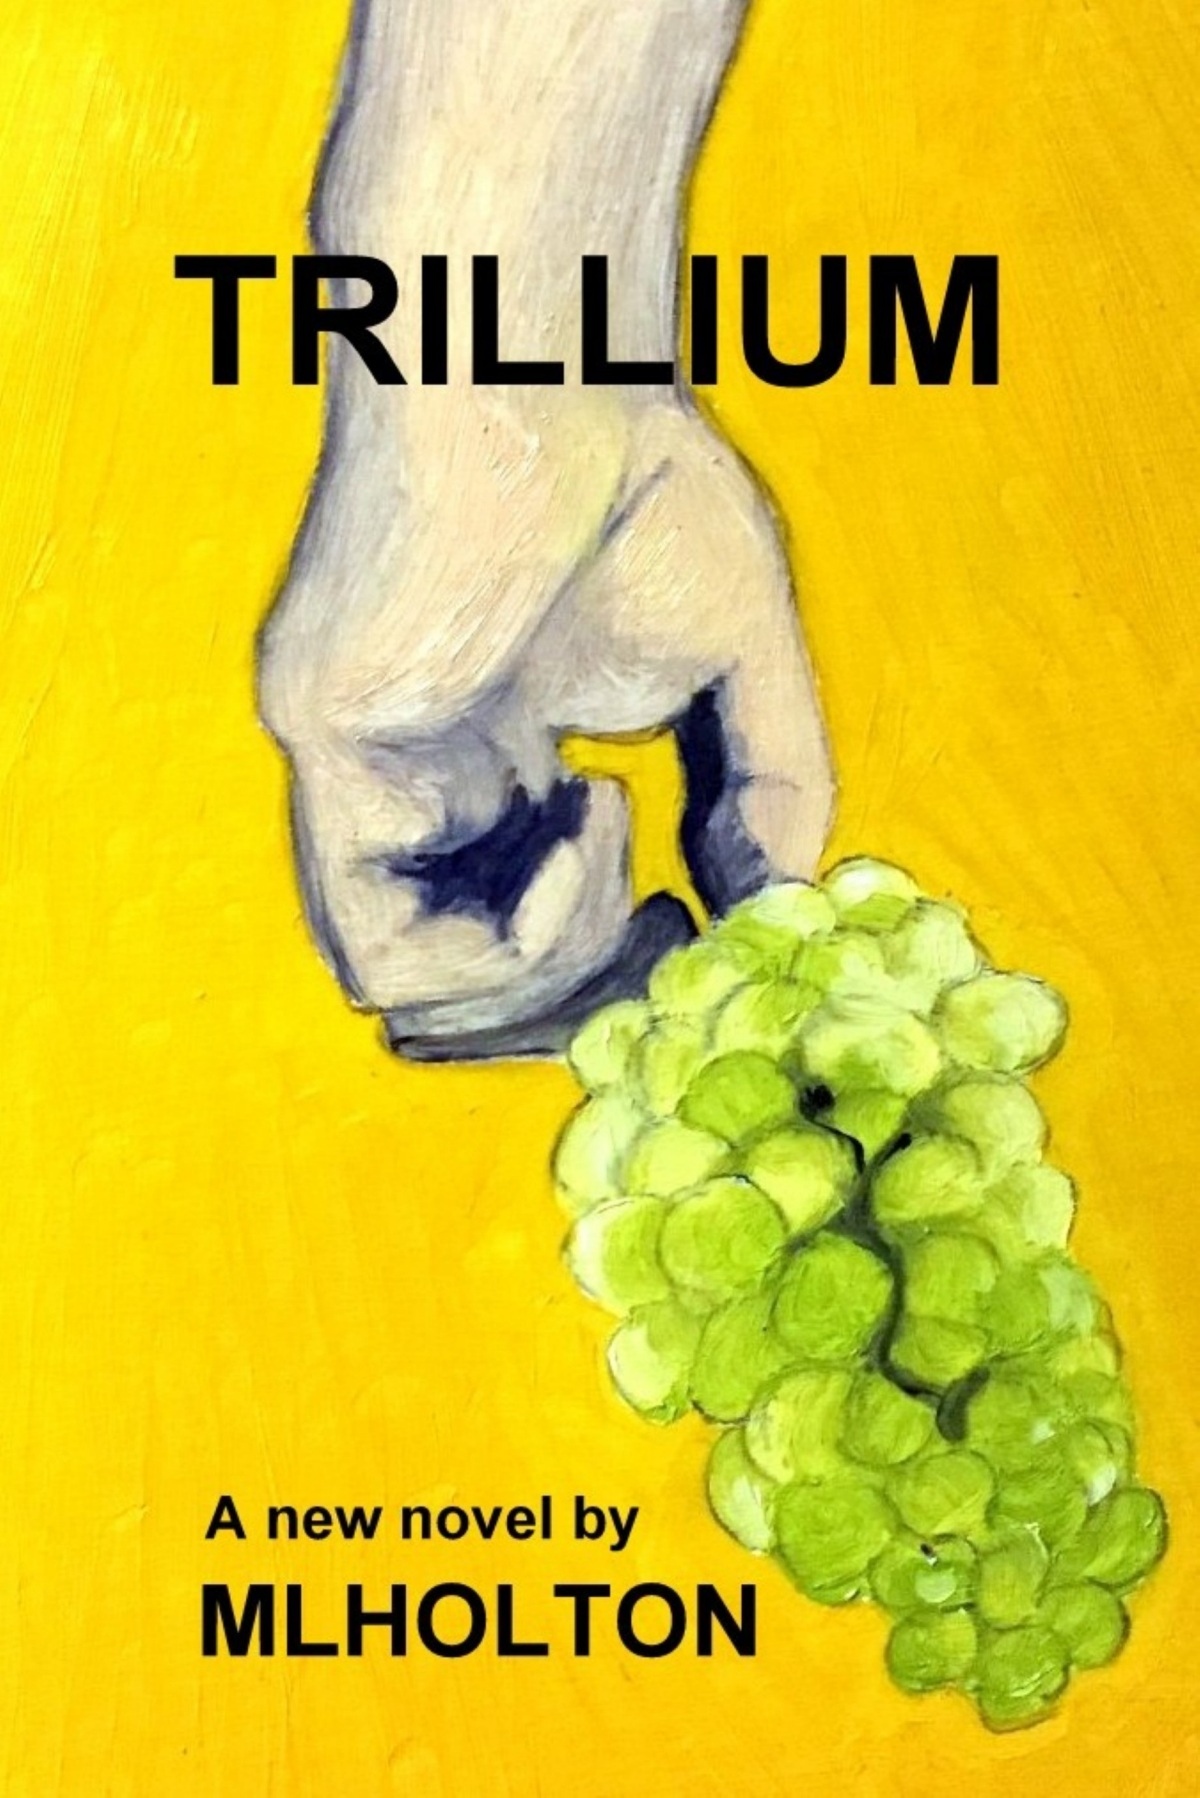 Trillium: an author interview with M.L. Holton